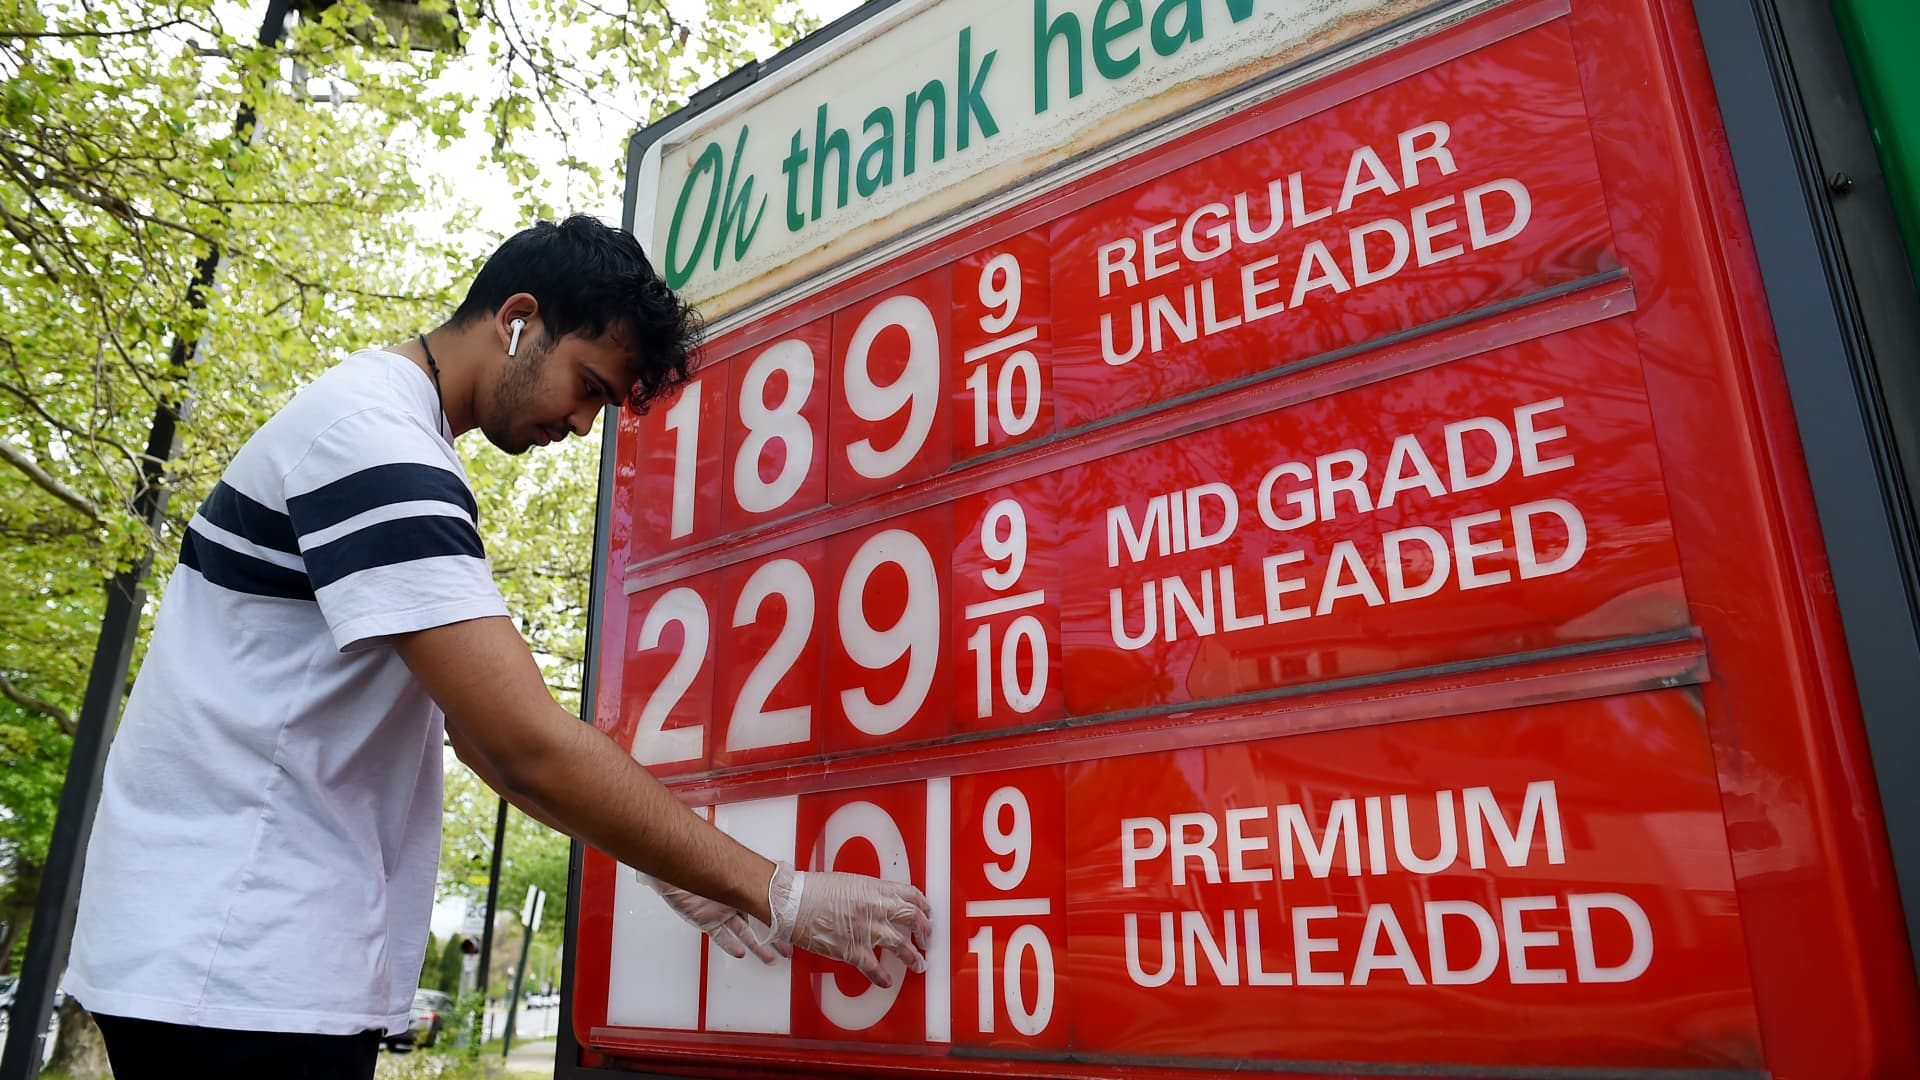 An employee of a gas station adjusts gasoline pump prices as they continue to fall with the oil market in turmoil on April 21, 2020, in Arlington, Virginia.